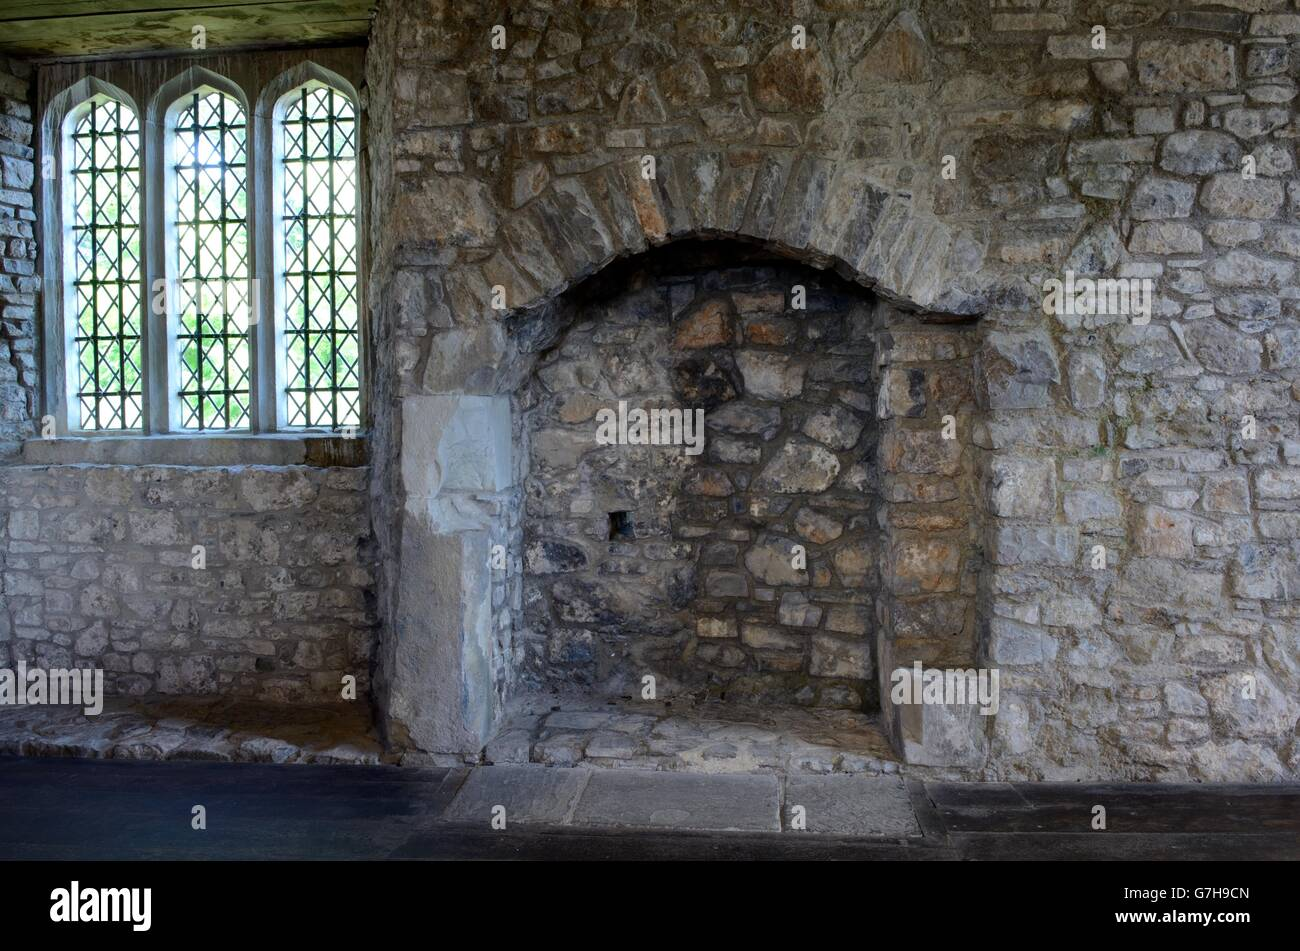 old stone fireplace. Old stone fireplace and window inside Oxwich Castle Gower Peninsula Wales